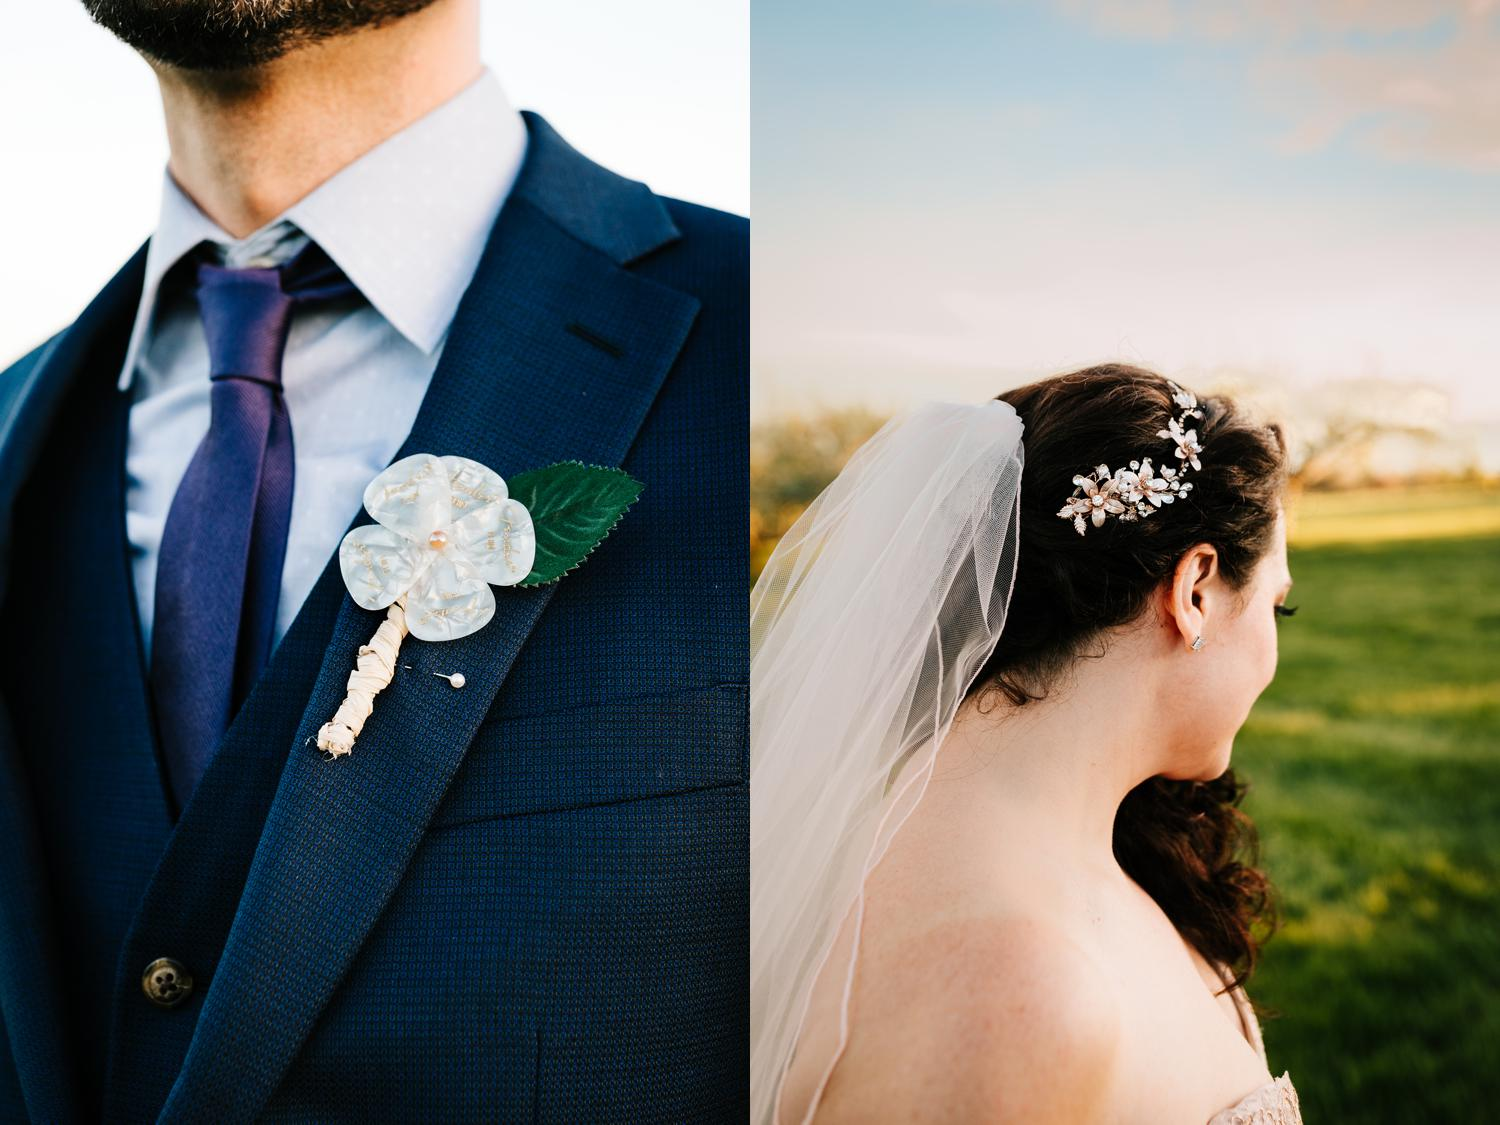 Guitar pick boutonniere and bride hairpiece for spring wedding